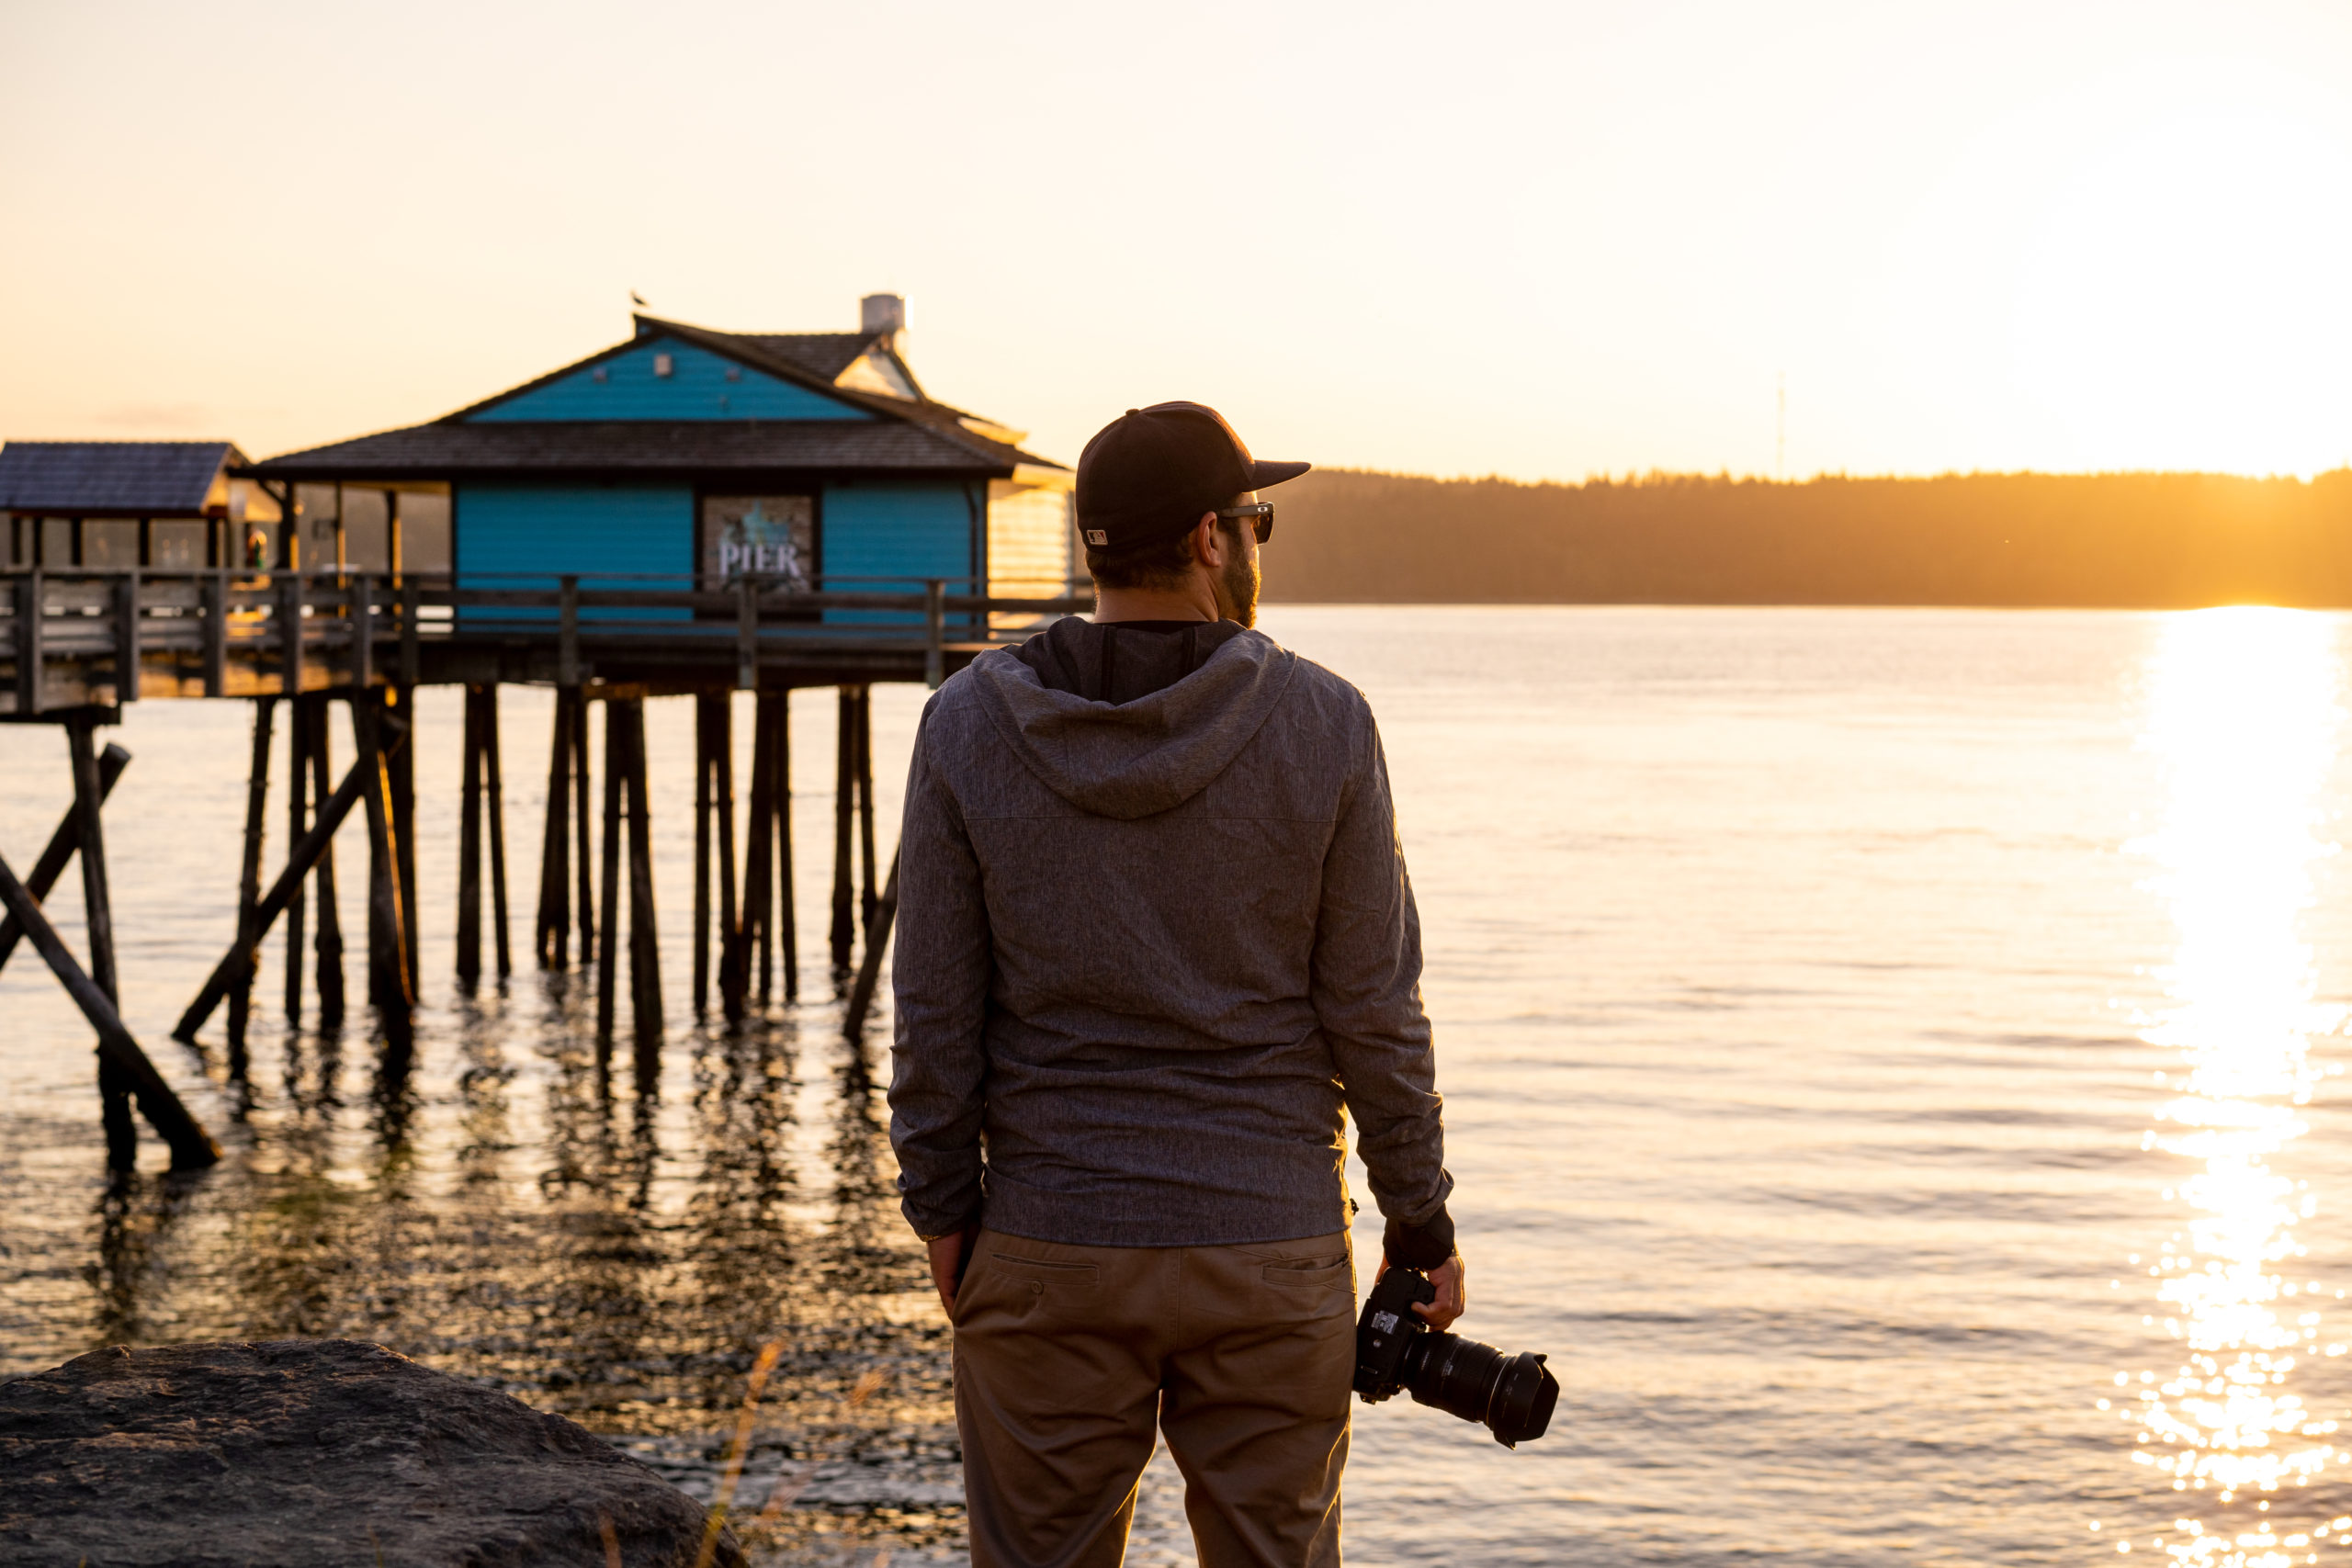 Photographer at the Discovery Pier